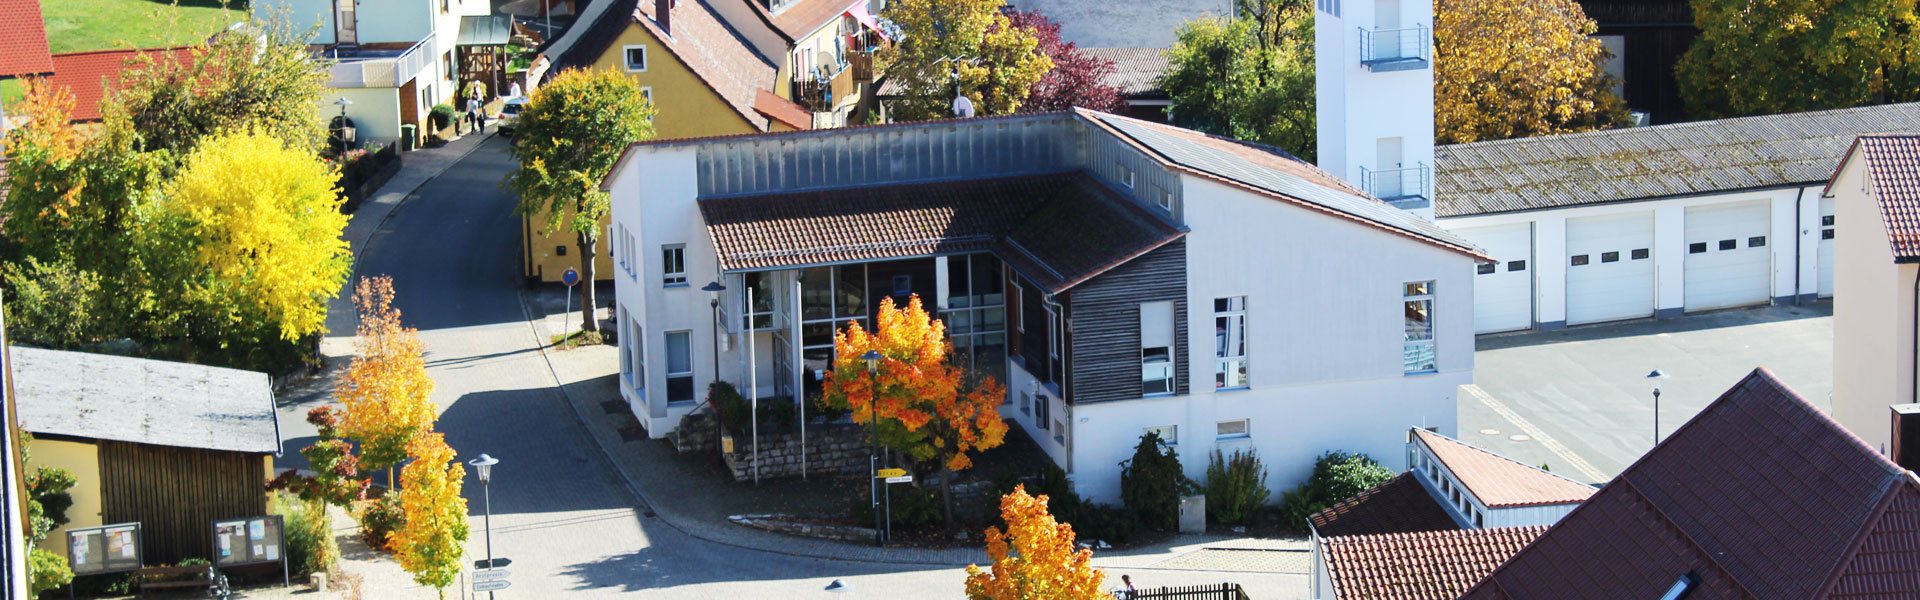 Header Hartenstein 003